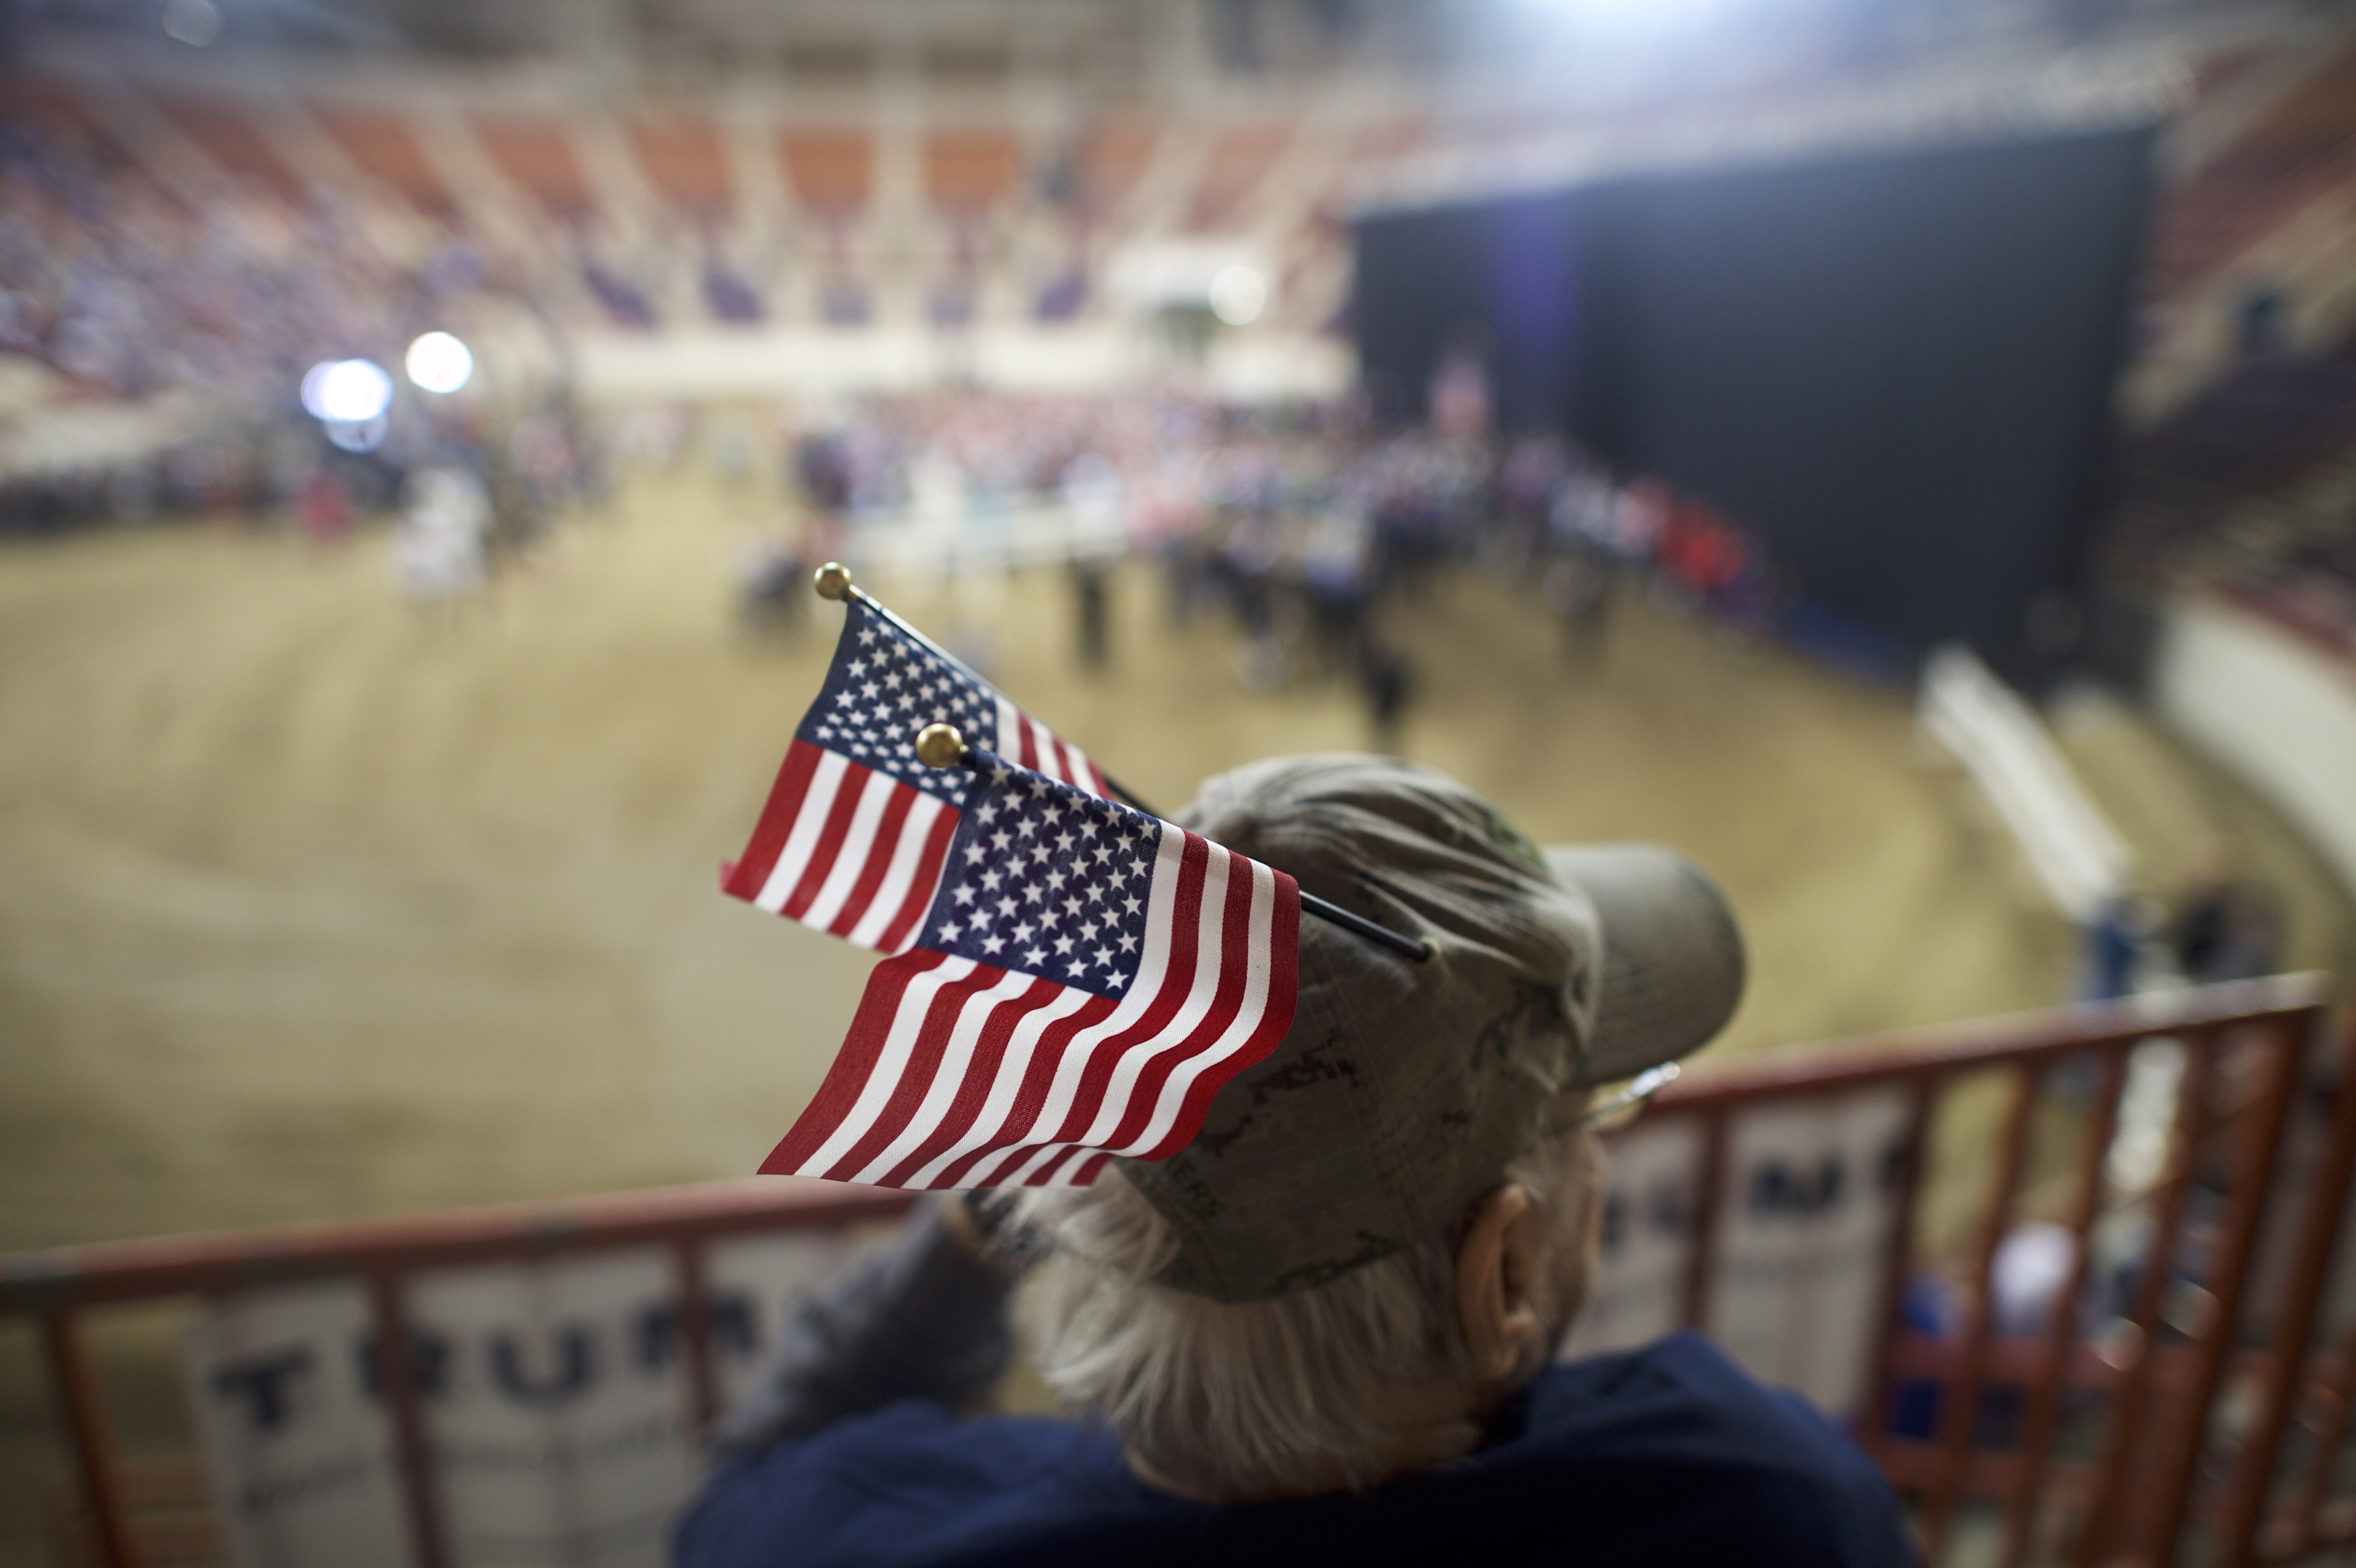 Donald Trump supporters await the start of a rally with the Republican presidential hopeful at the Pennsylvania Farm Show Complex & Expo Center on April 21, 2016 in Harrisburg, Pennsylvania